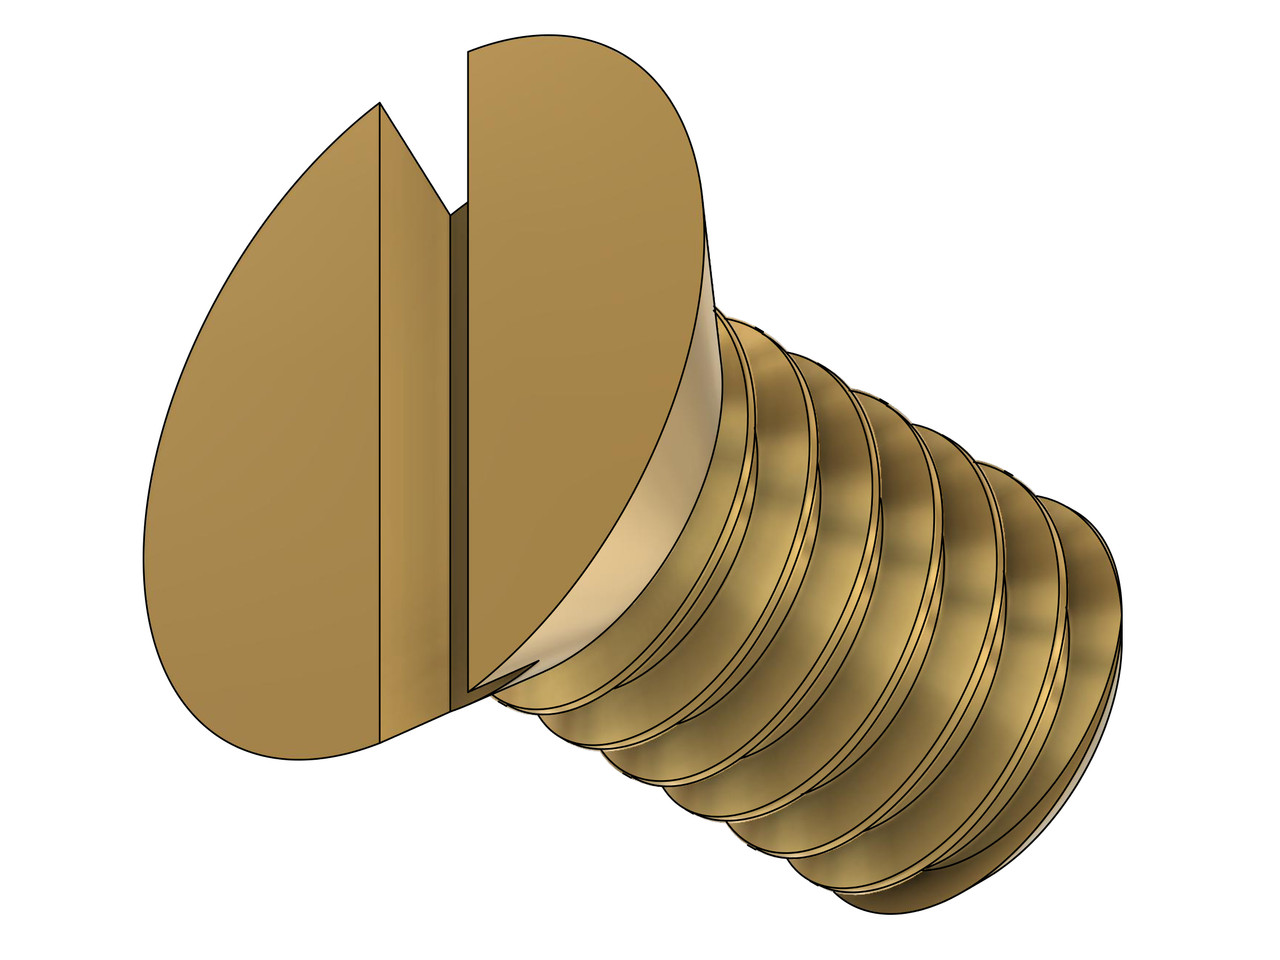 """1-72 Flat Head Slotted Machine Screw, Length 1/8"""" Full thread to under head. Brass Price is for 100 pieces."""